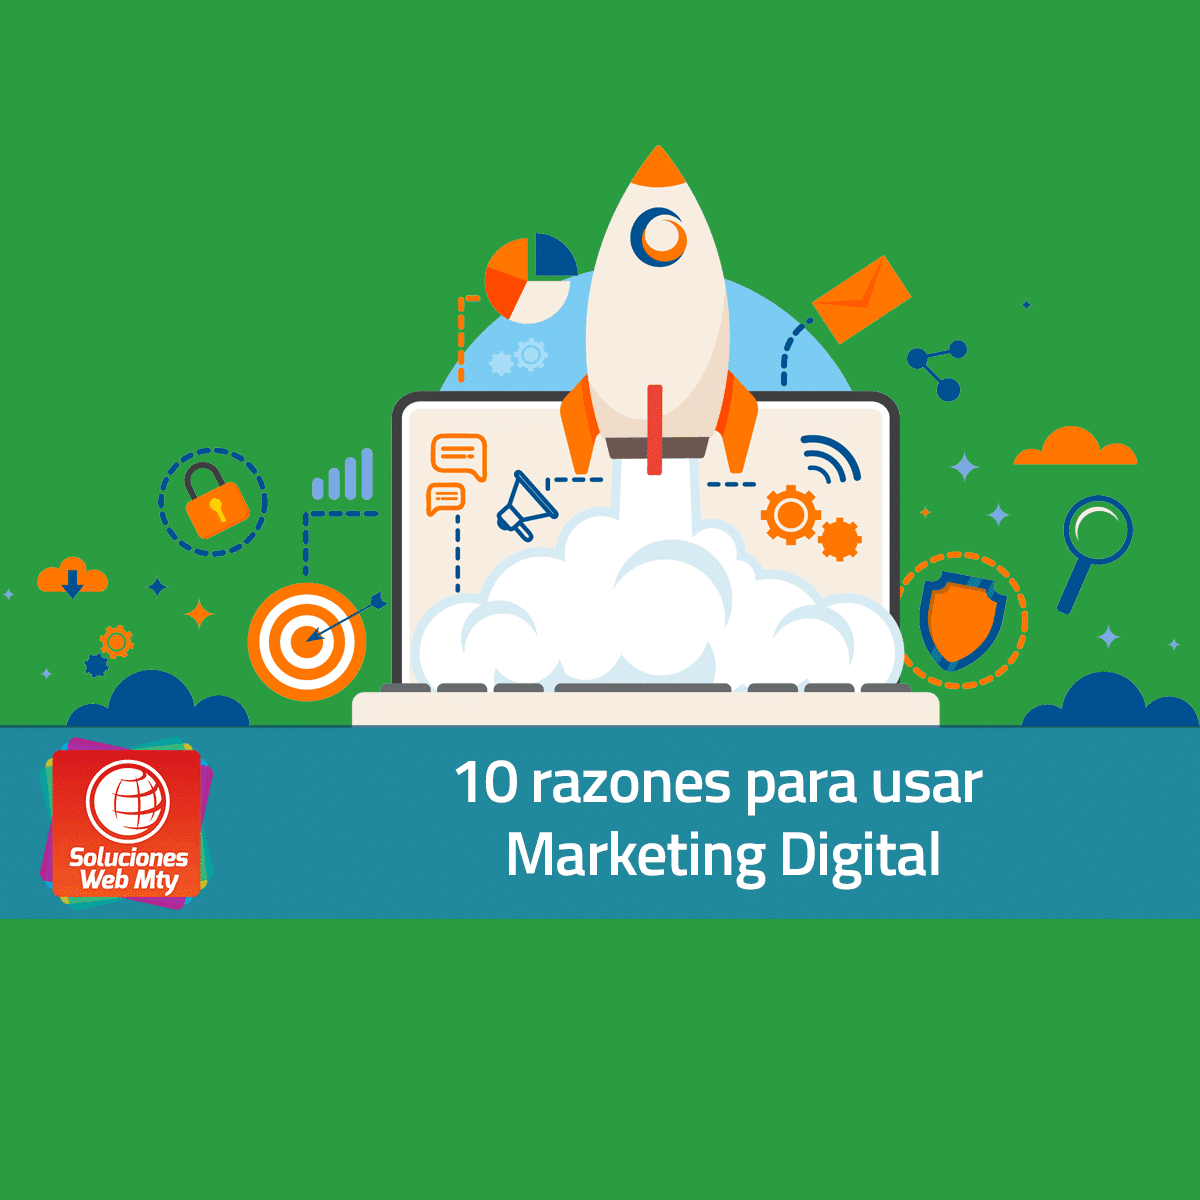 10 razones para usar Marketing Digital